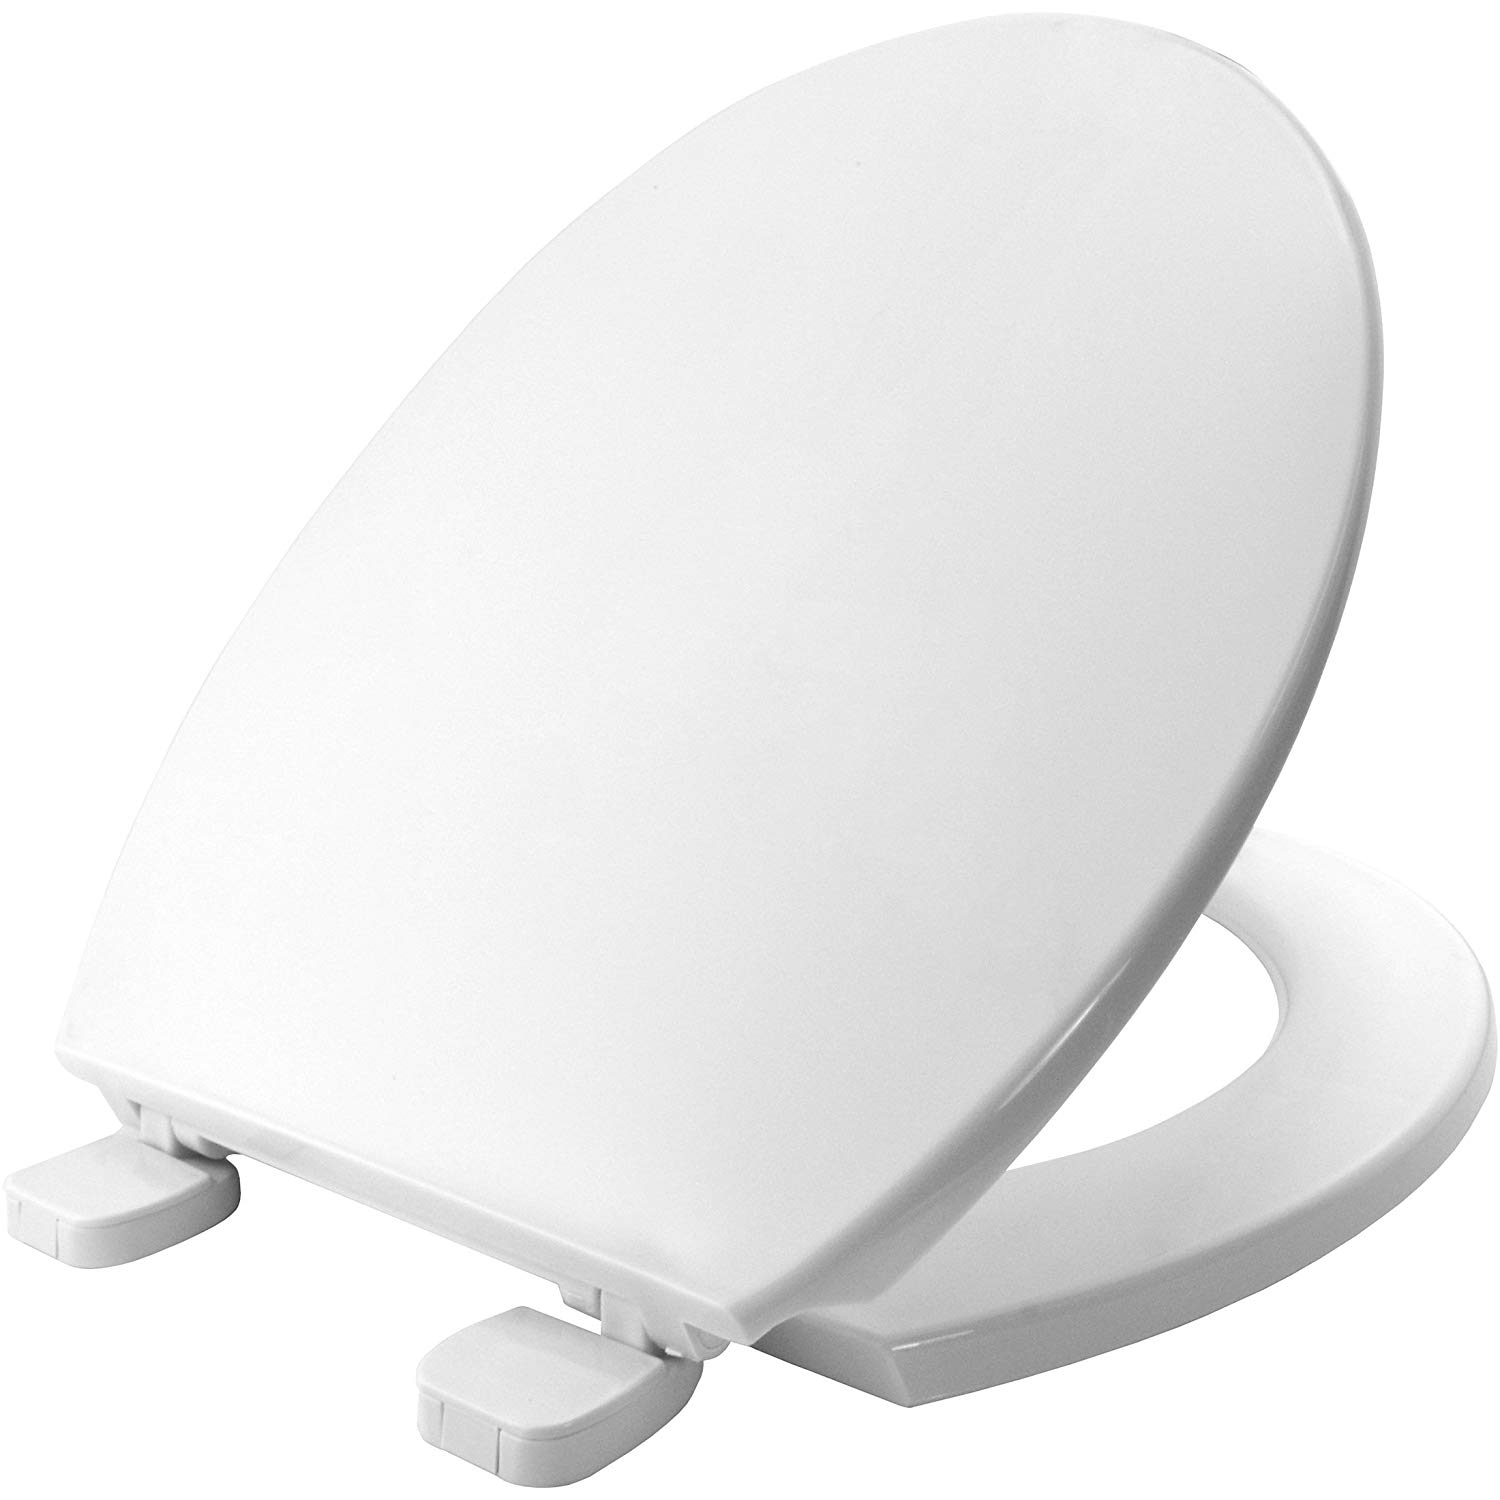 Bemis Chester STAY TIGHT Toilet Seat – White